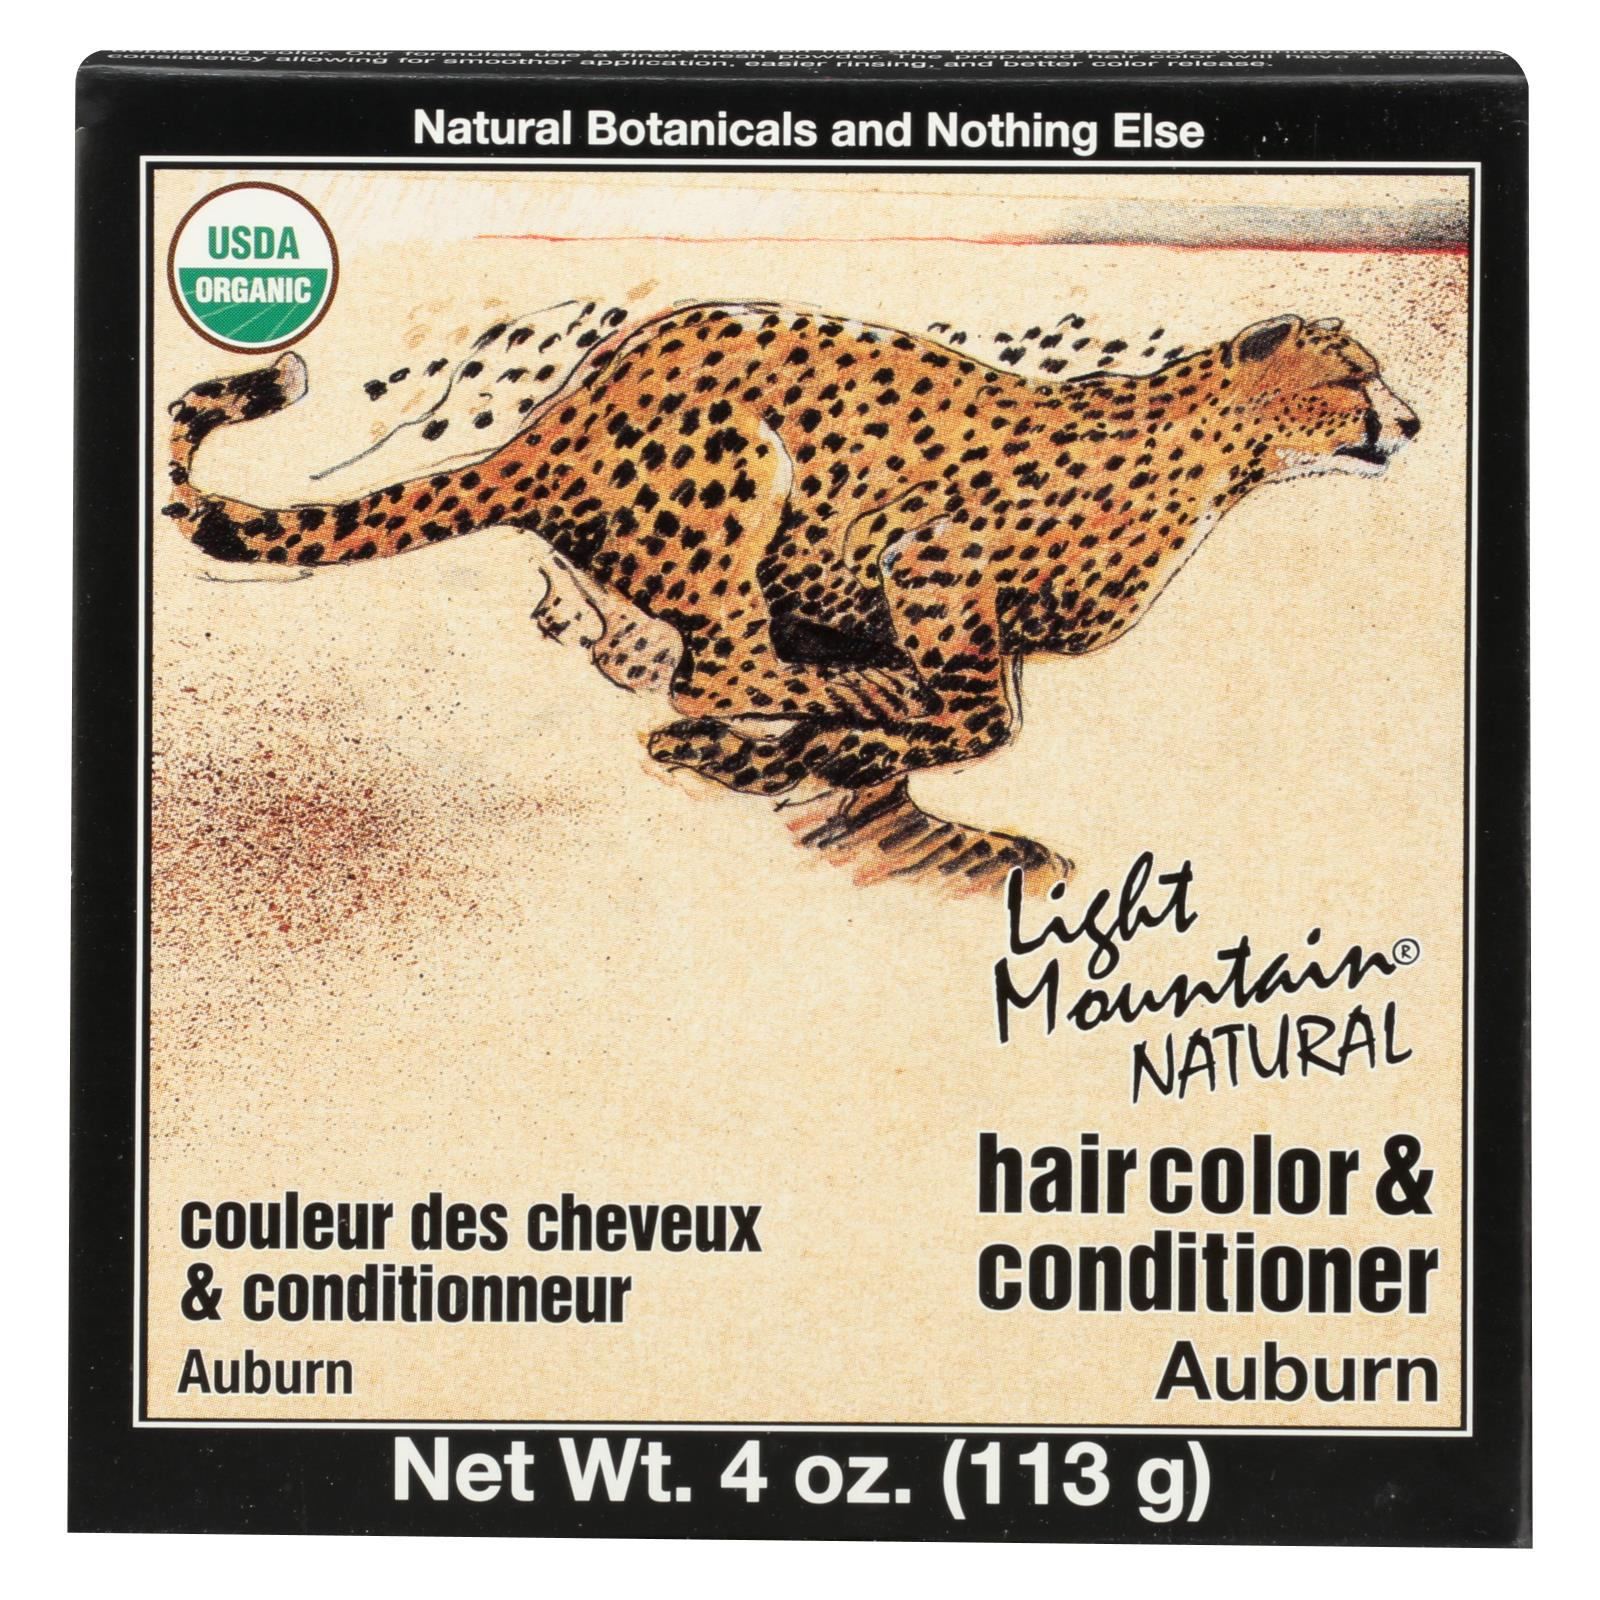 Buy Light Mountain Hair Color/Conditioner - Organic - Auburn - 4 oz - Conditioner from Veroeco.com